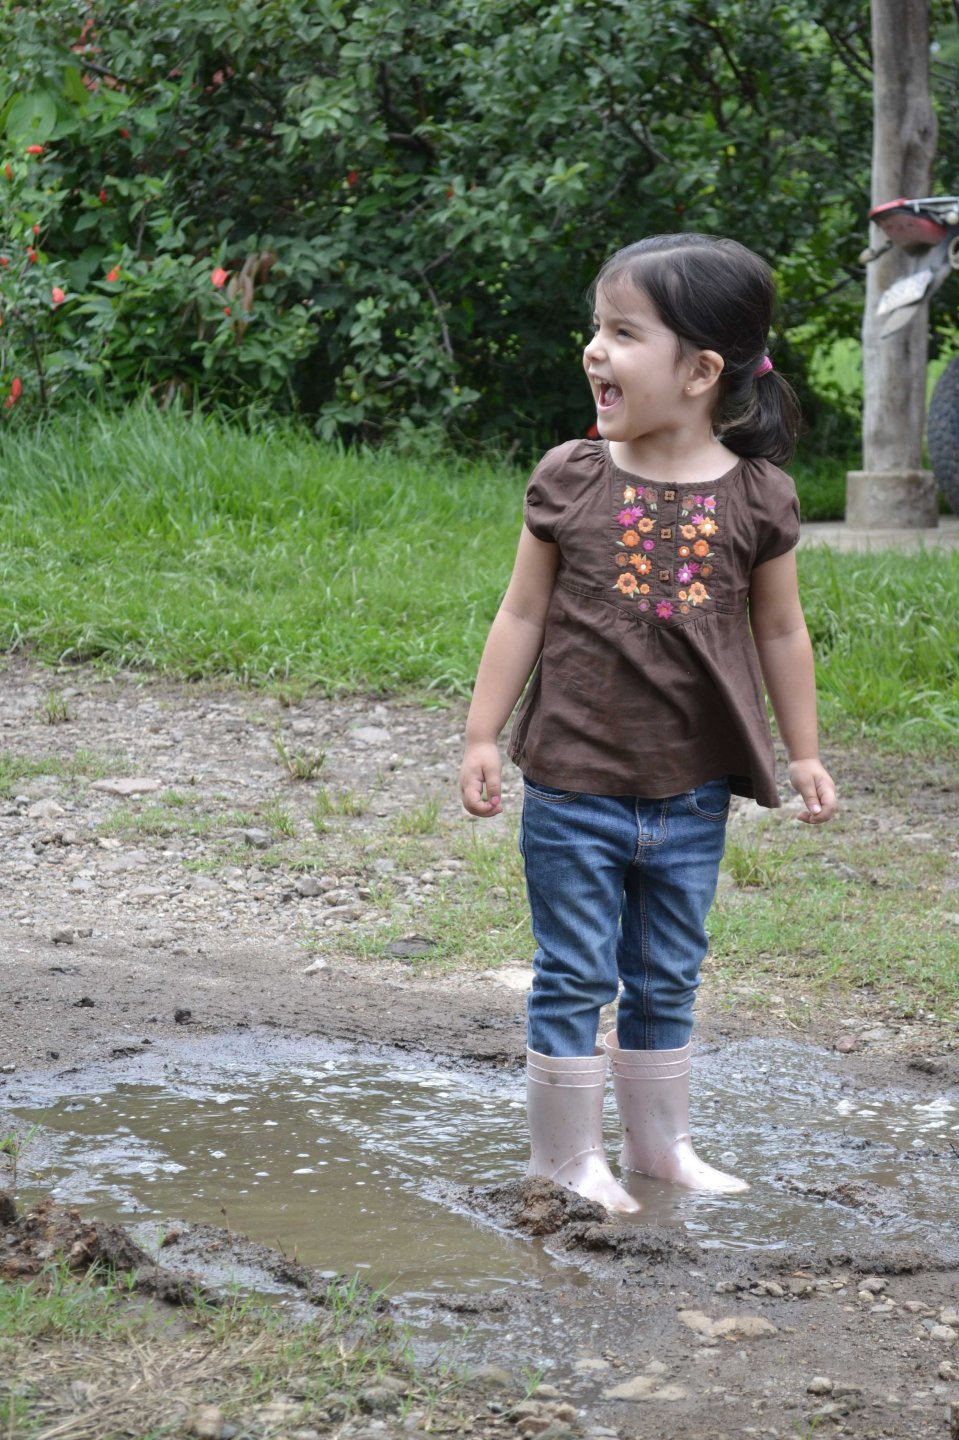 the-joy-of-puddle-jumping2